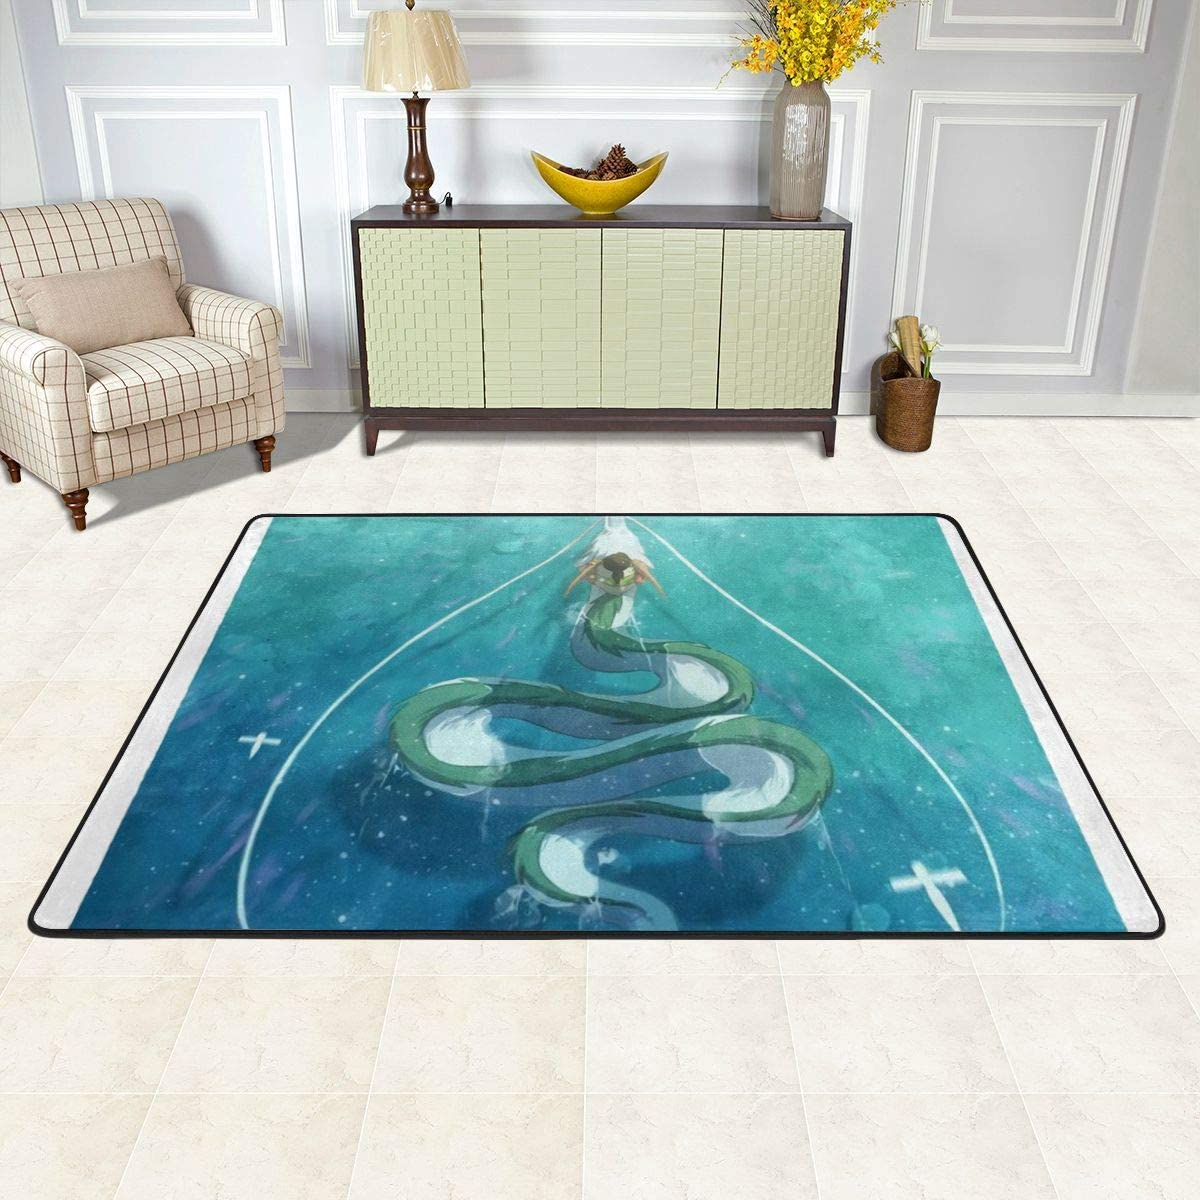 Miyazaki s Work-Spirited Away Carpet 36 X 24 in 72 X 48 in Floor Mat Outdoor Large Area Rugs.